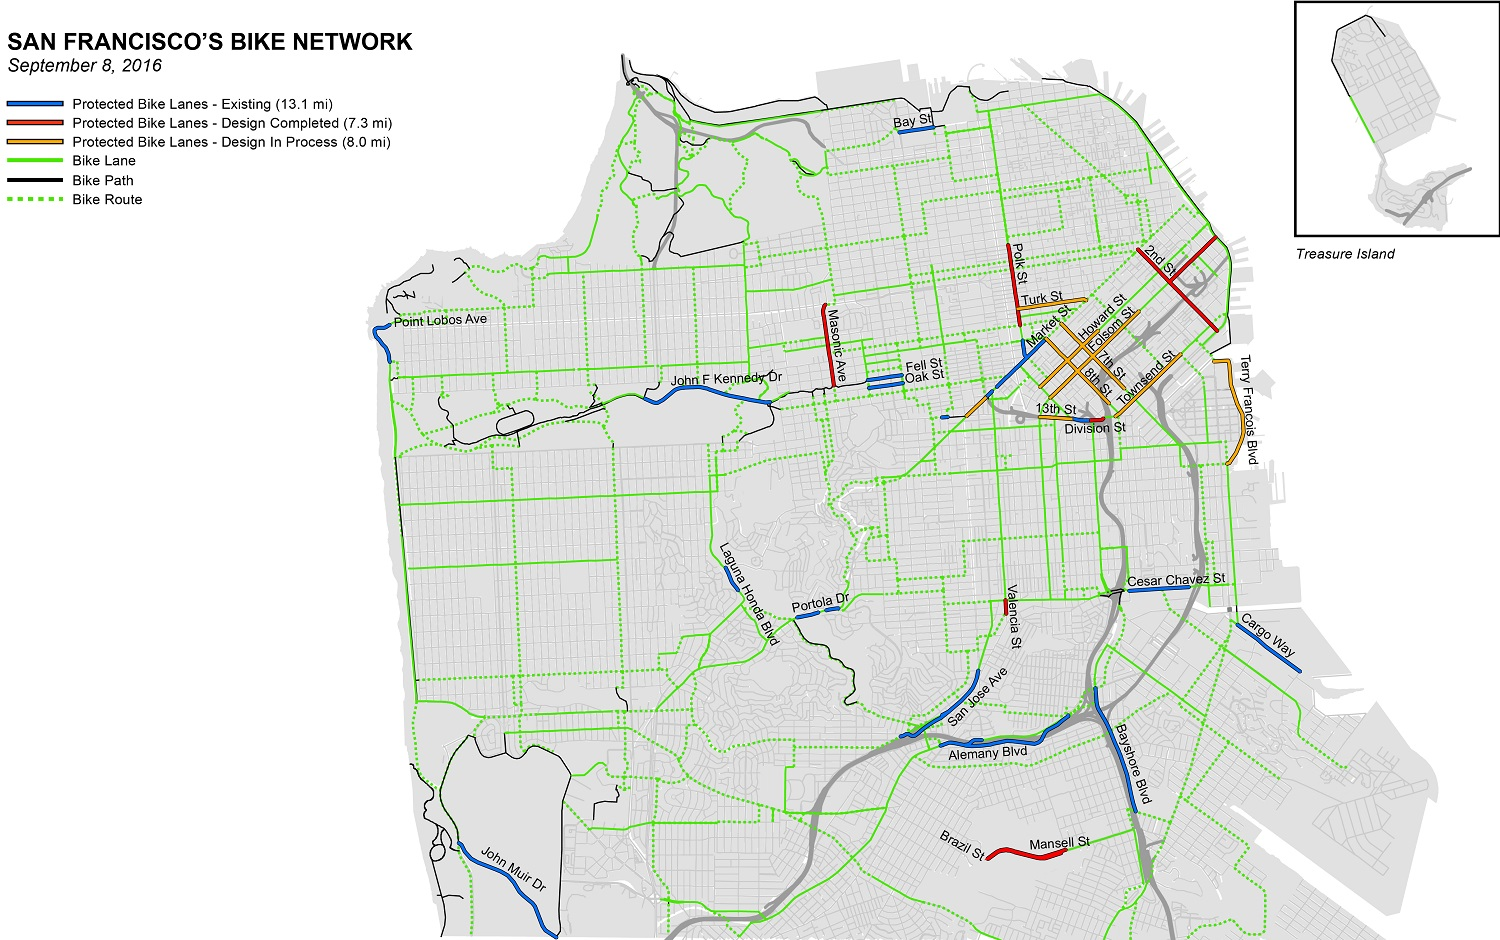 A New Generation Of Bikeways Is Coming To San Francisco SFMTA - Map san francisco bus routes